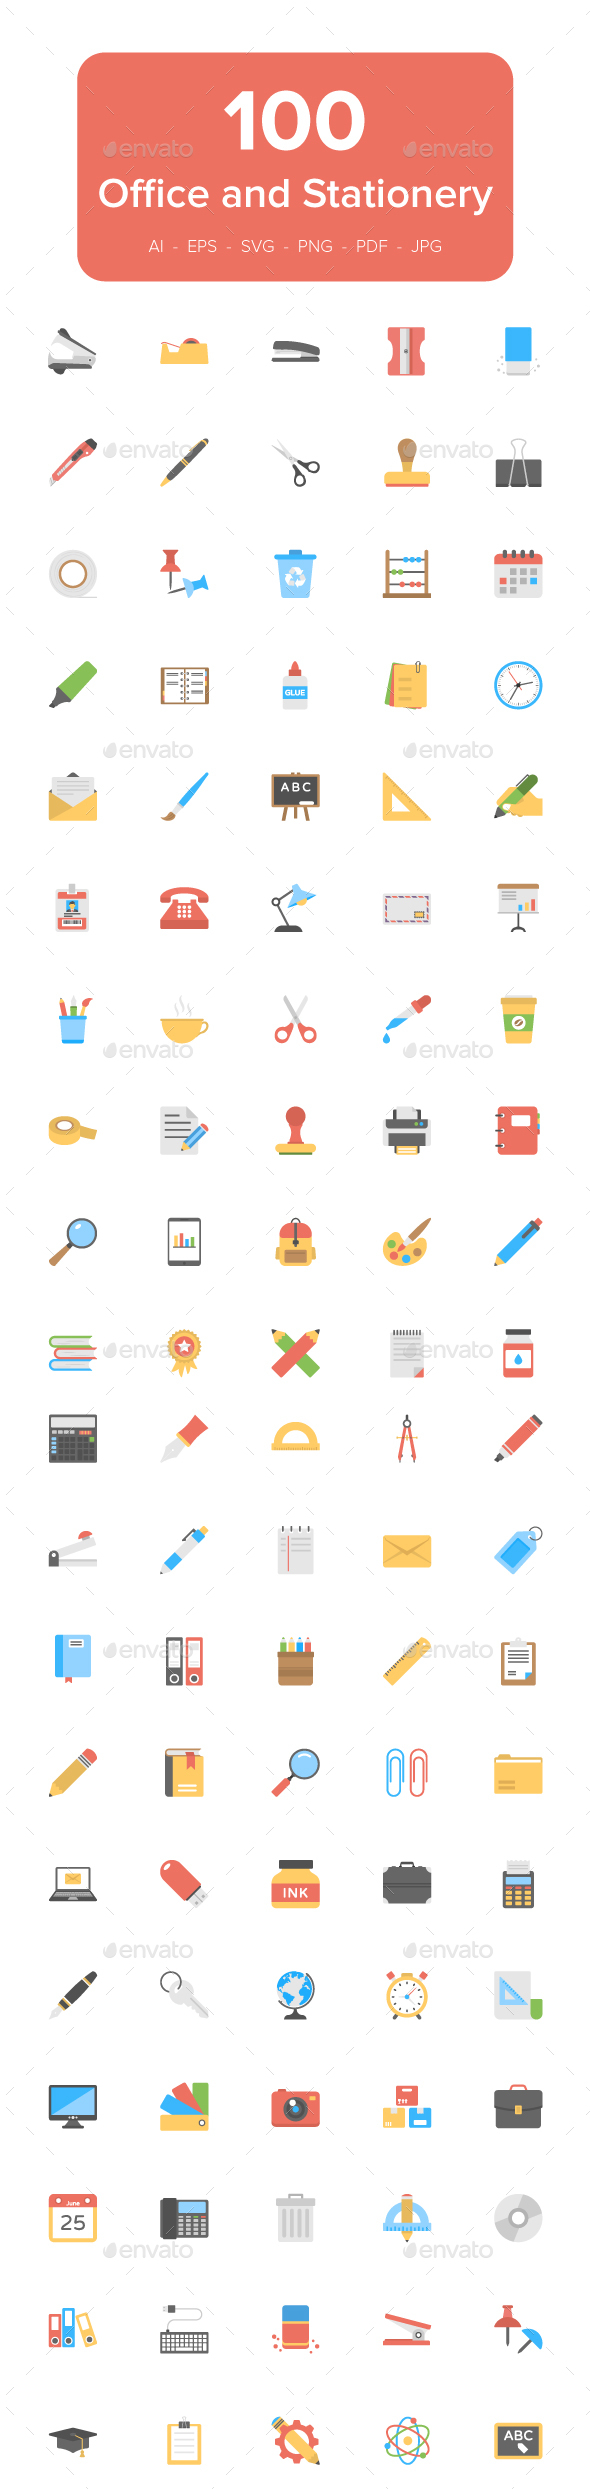 100 Office and Stationery Flat Icons - Icons